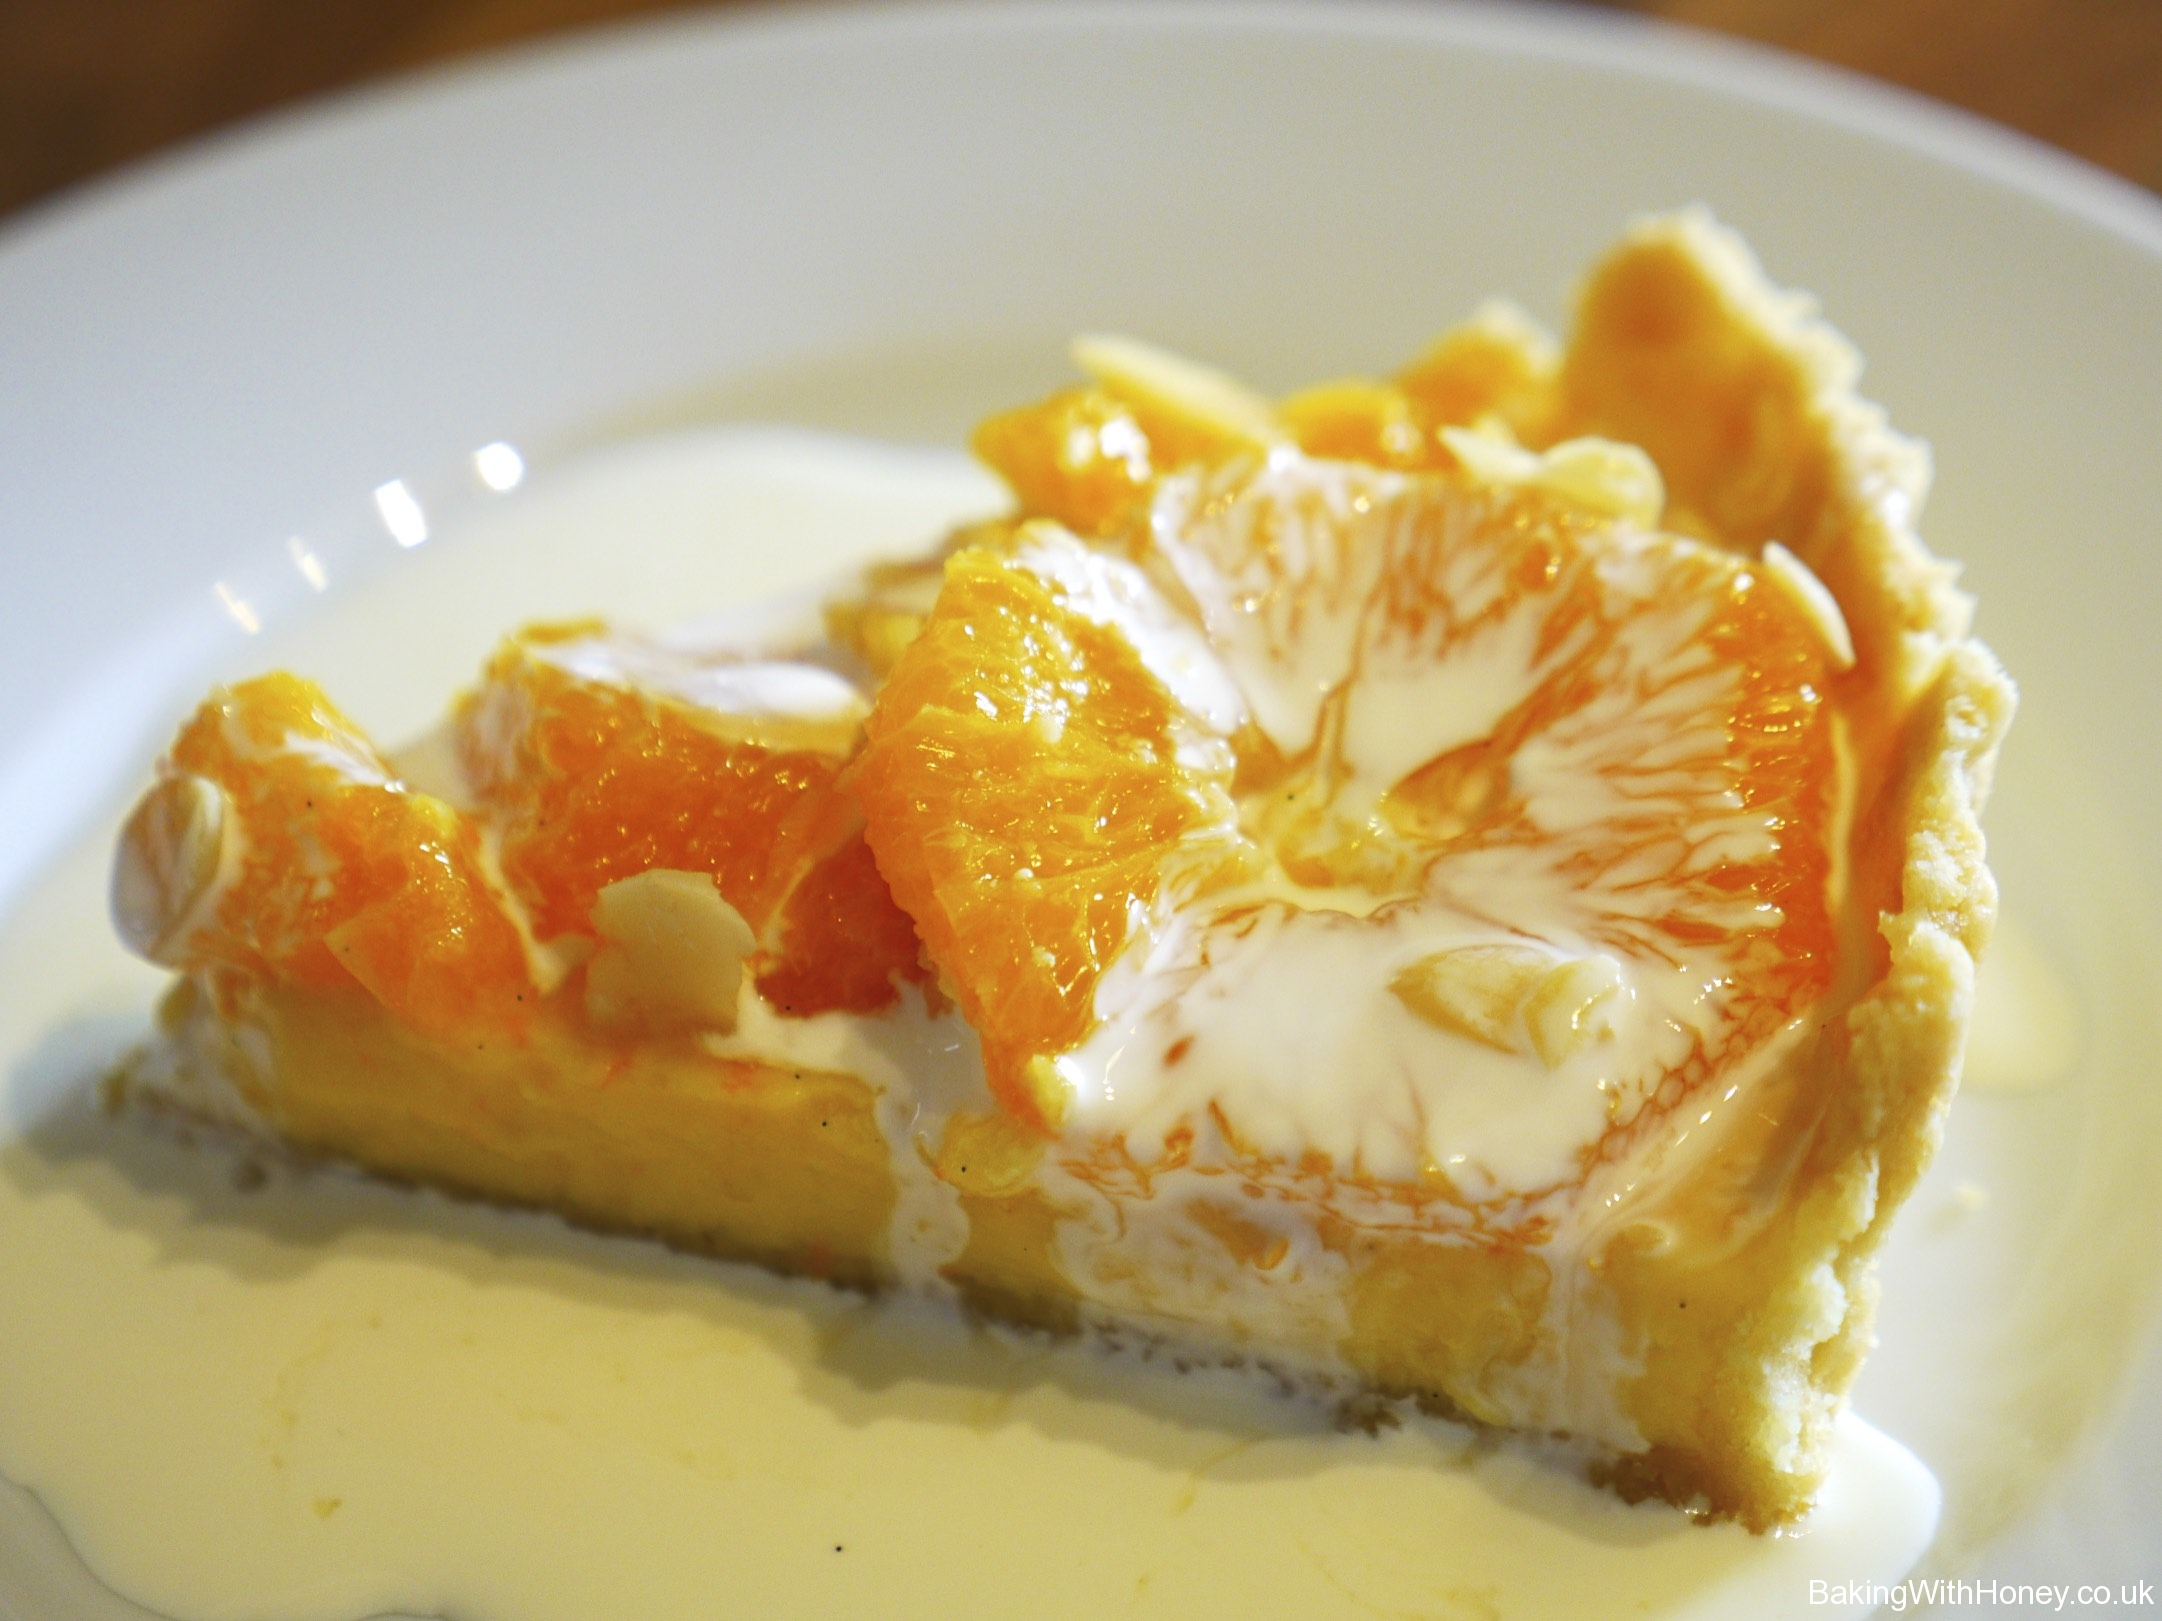 Caramelised Orange & Almond Tart